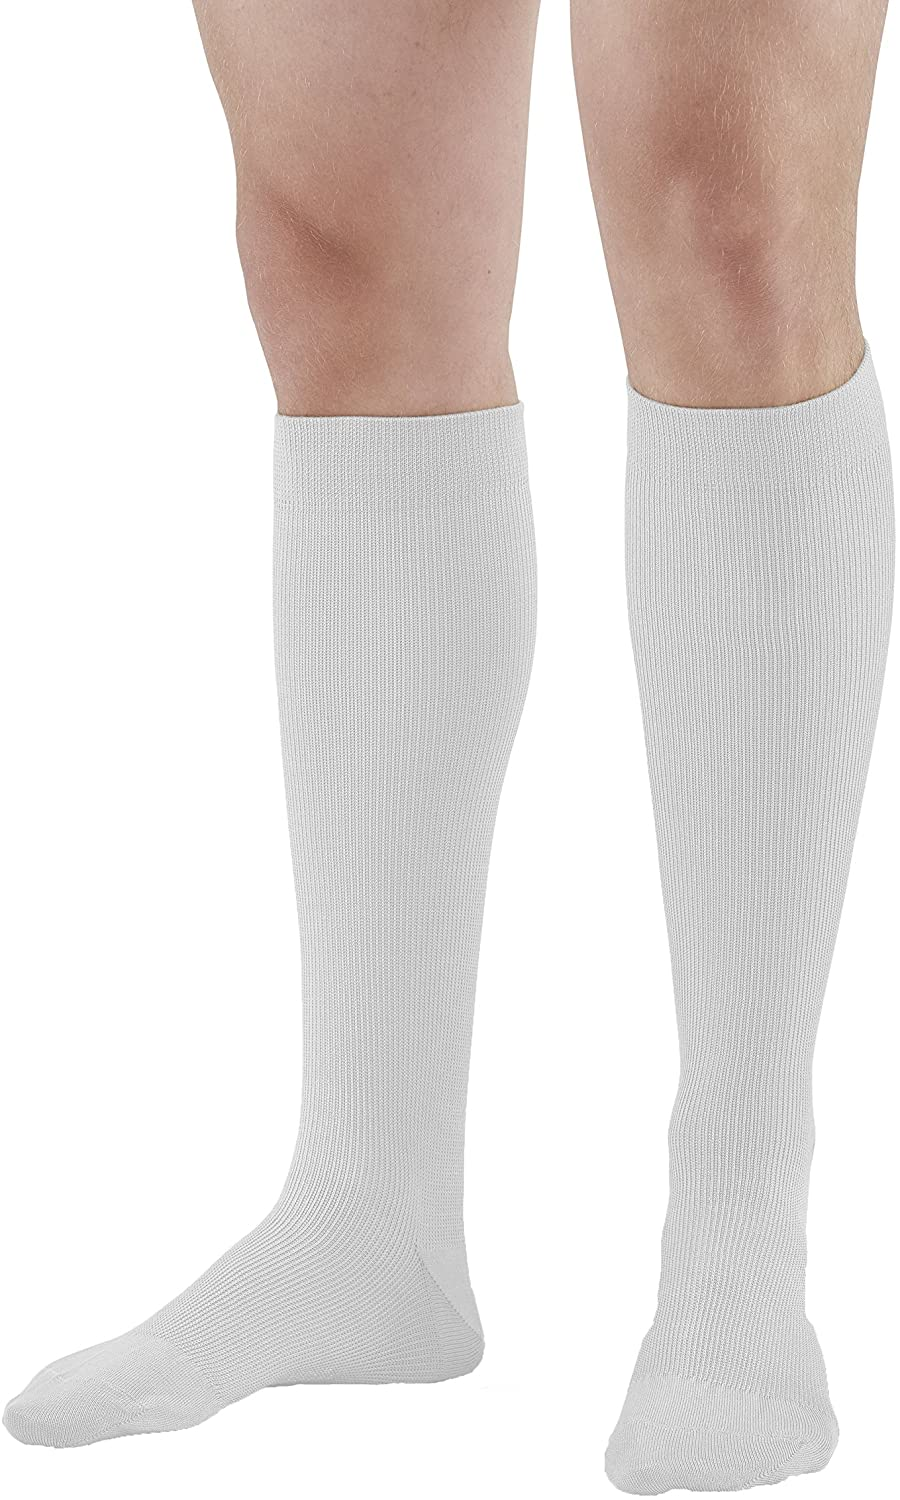 Ames Walker AW Style 111 Cotton Firm 20 30mmHg Knee High Socks White Large